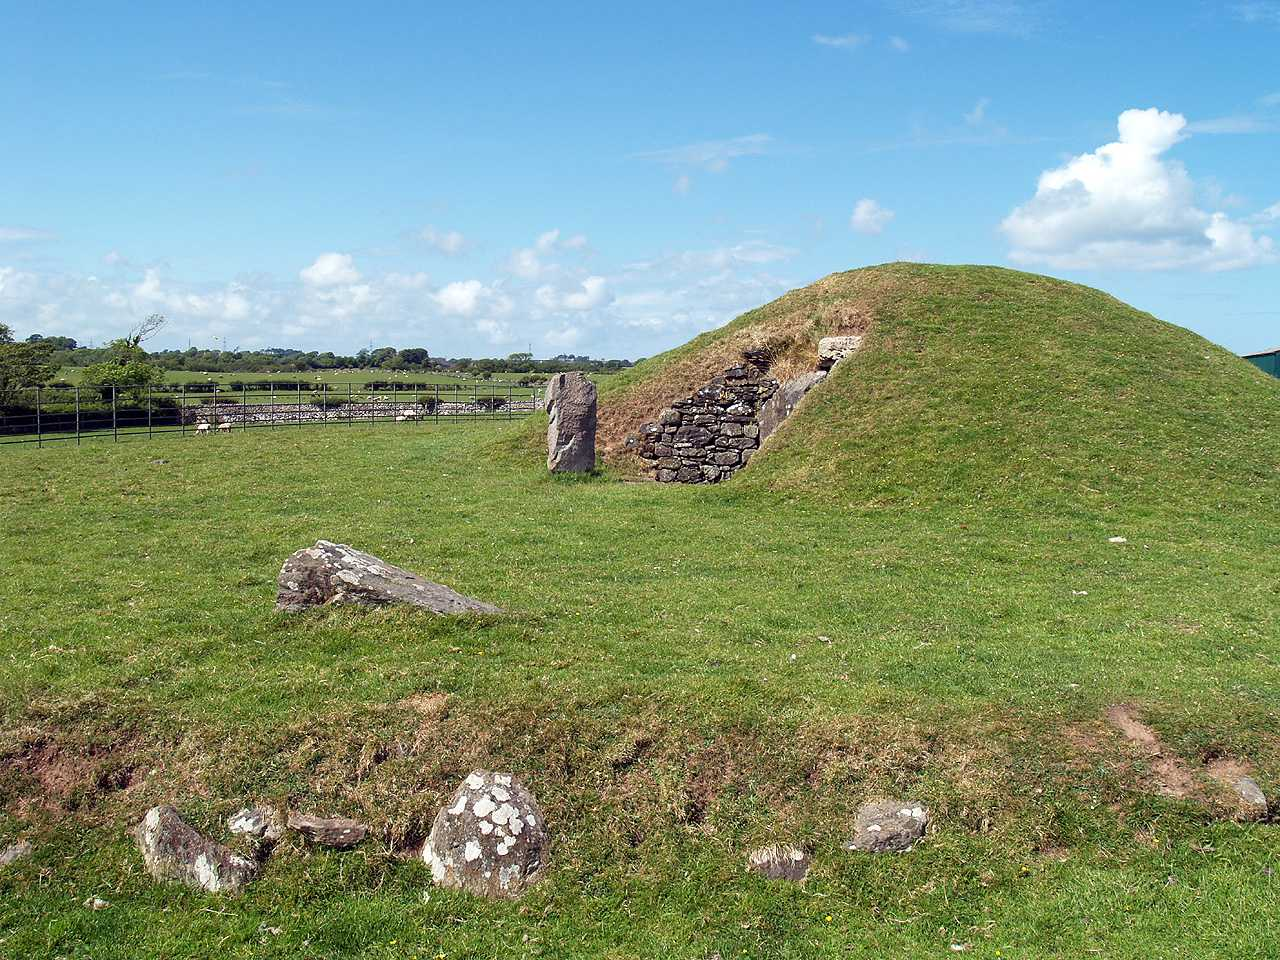 Anglesey, Llanddaniel, Bryn Celli Ddu, a side view of the entrance